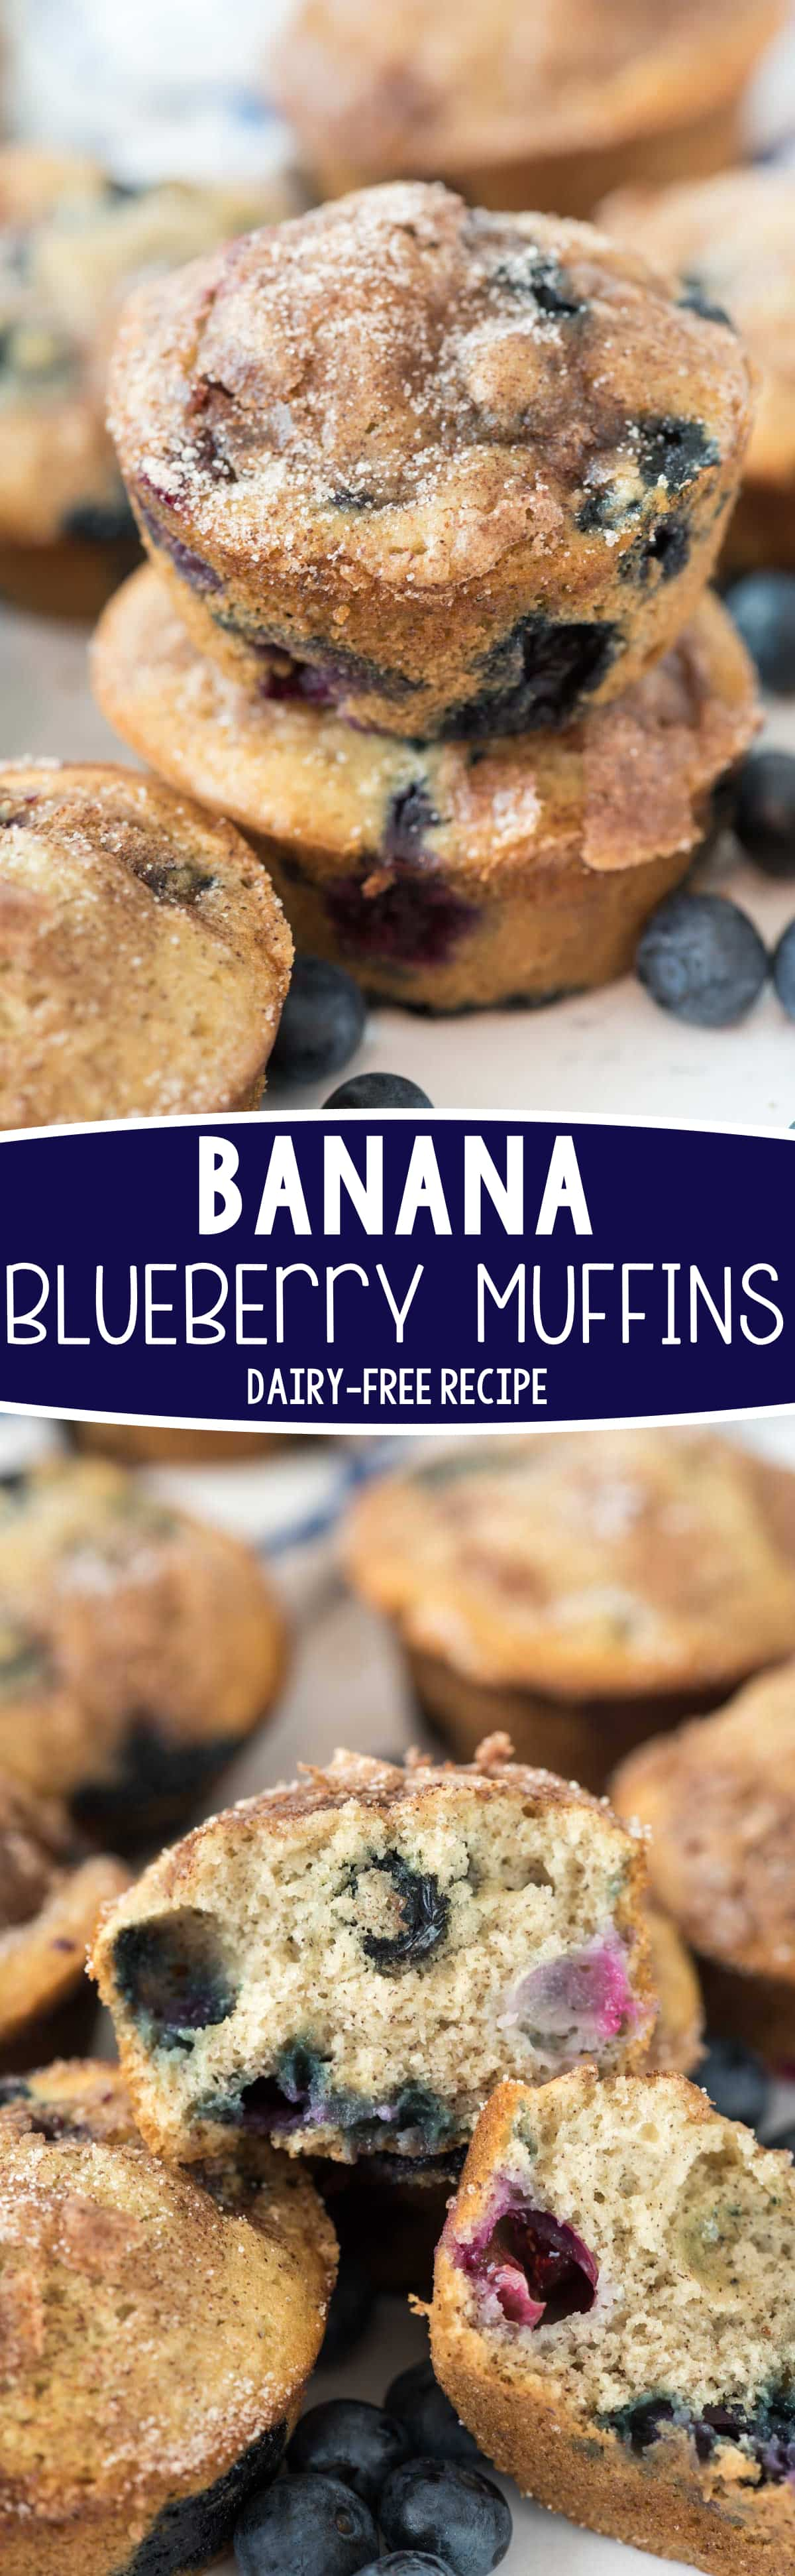 Banana Blueberry Muffins - this is an easy dairy-free blueberry muffin recipe that's also a banana muffin! EVERYONE loves these muffins!